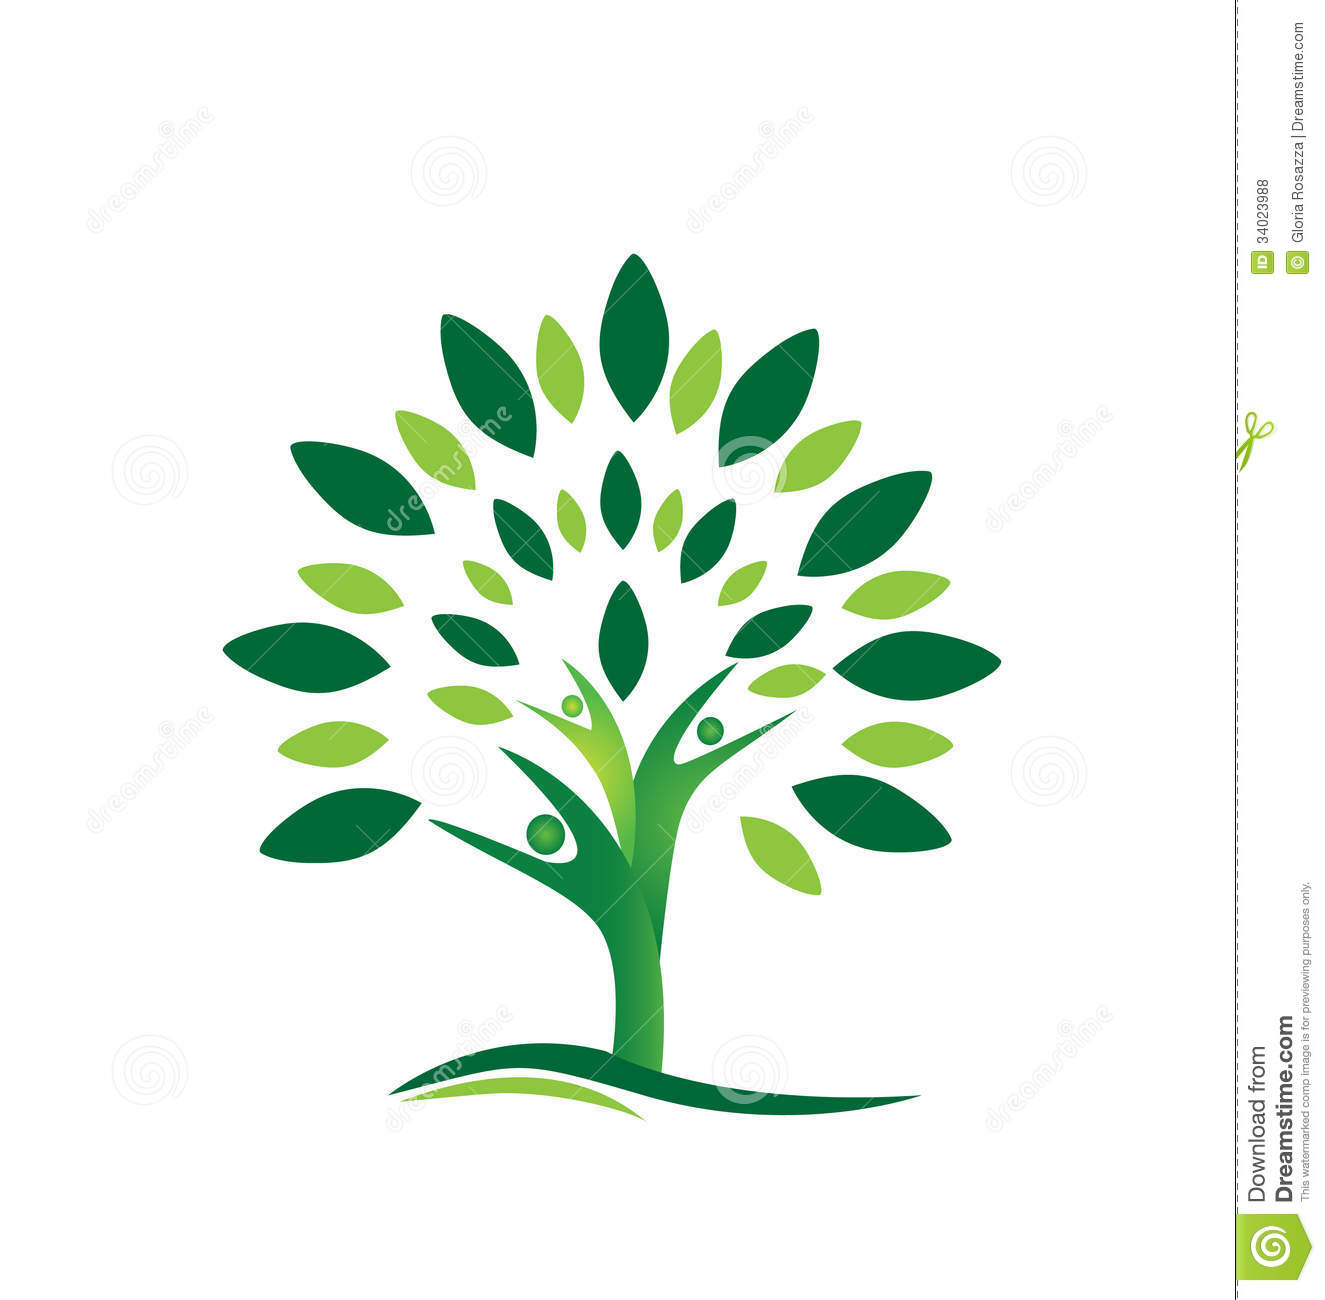 Tree Logo Stock Photos, Images, & Pictures - 19,157 Images